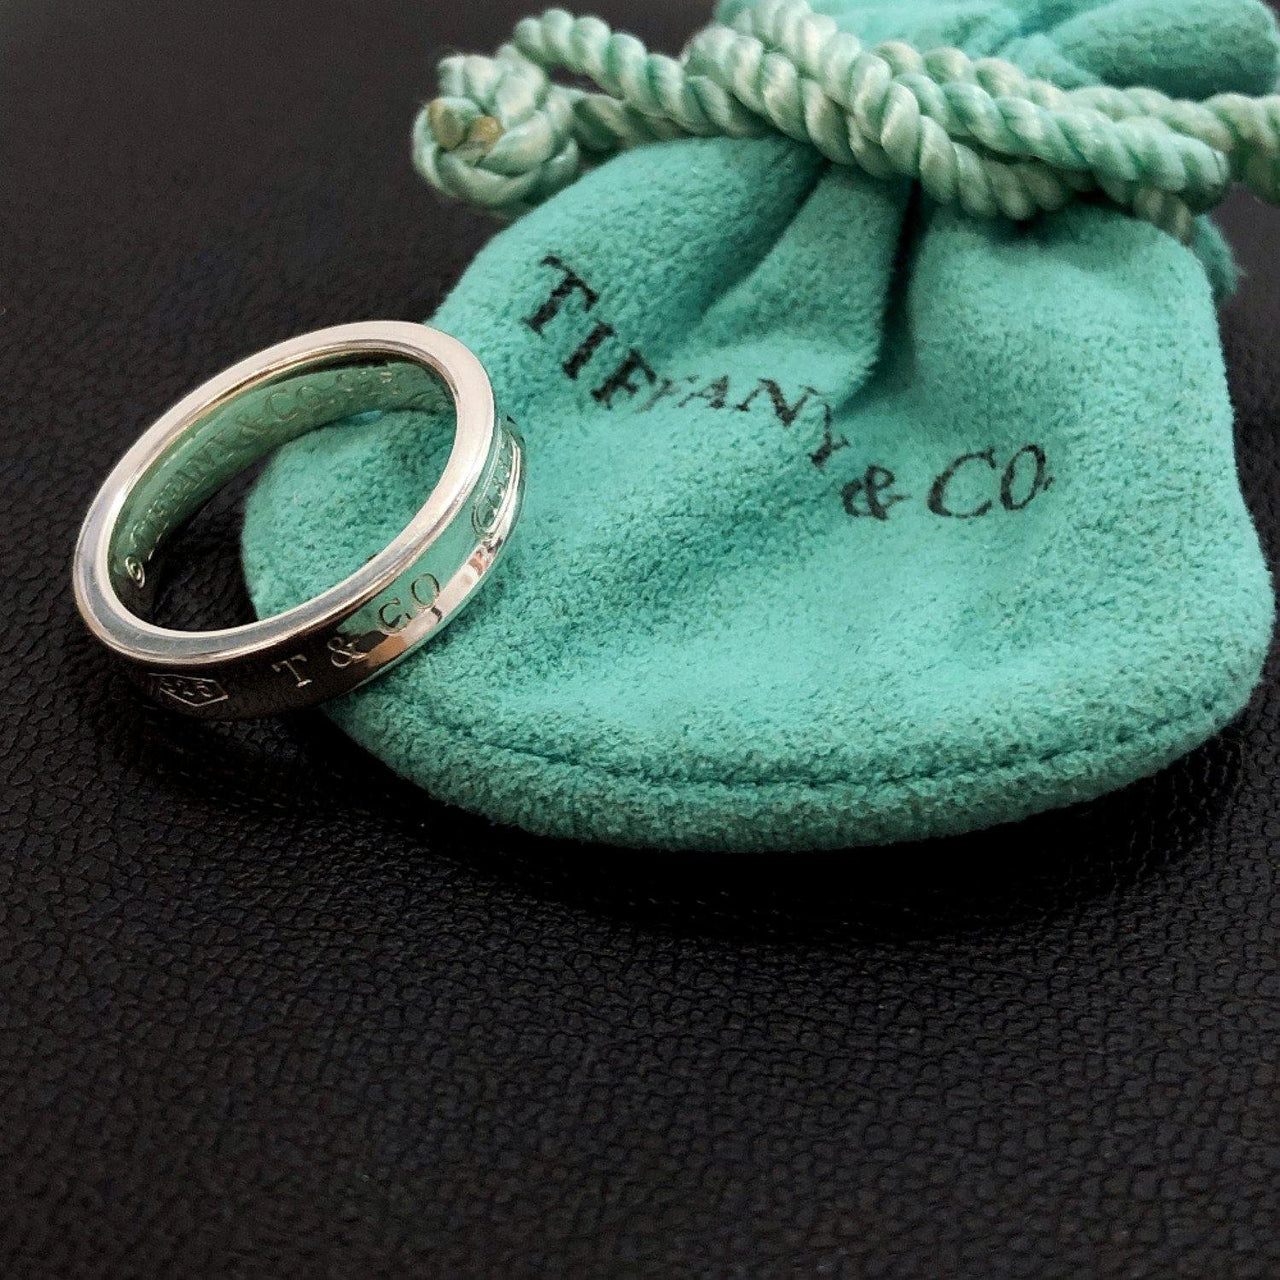 TIFFANY&Co. Ring 1837 Silver925 7.5 Silver Women Used - JP-BRANDS.com